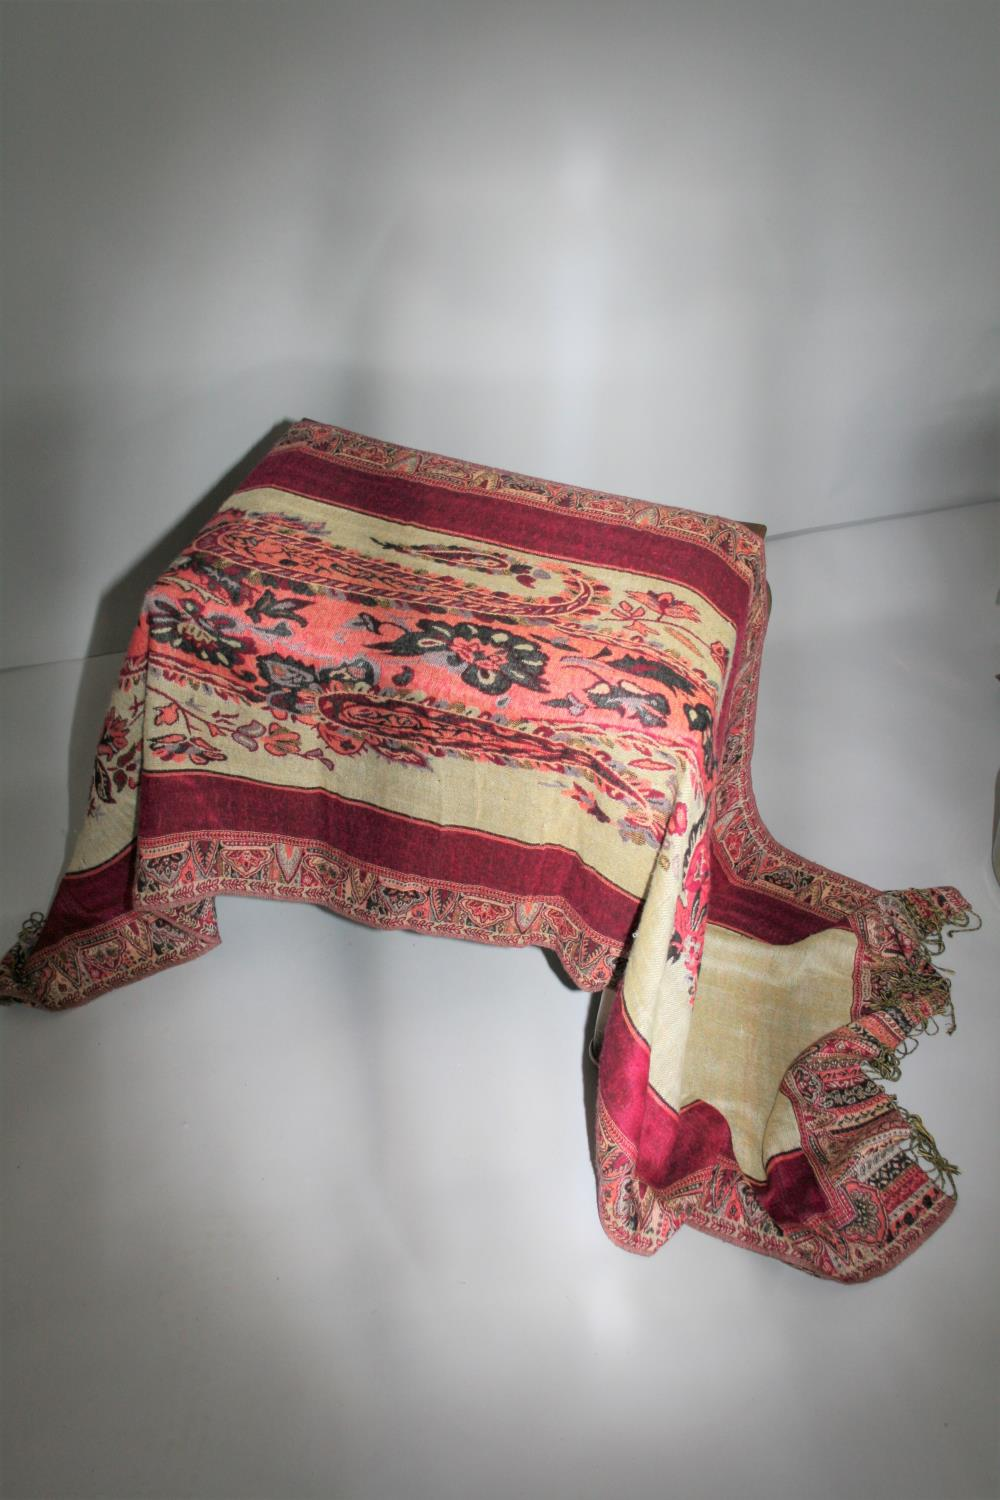 Frances Biggs Communion of Saint and hand woven scarf. - Image 2 of 3